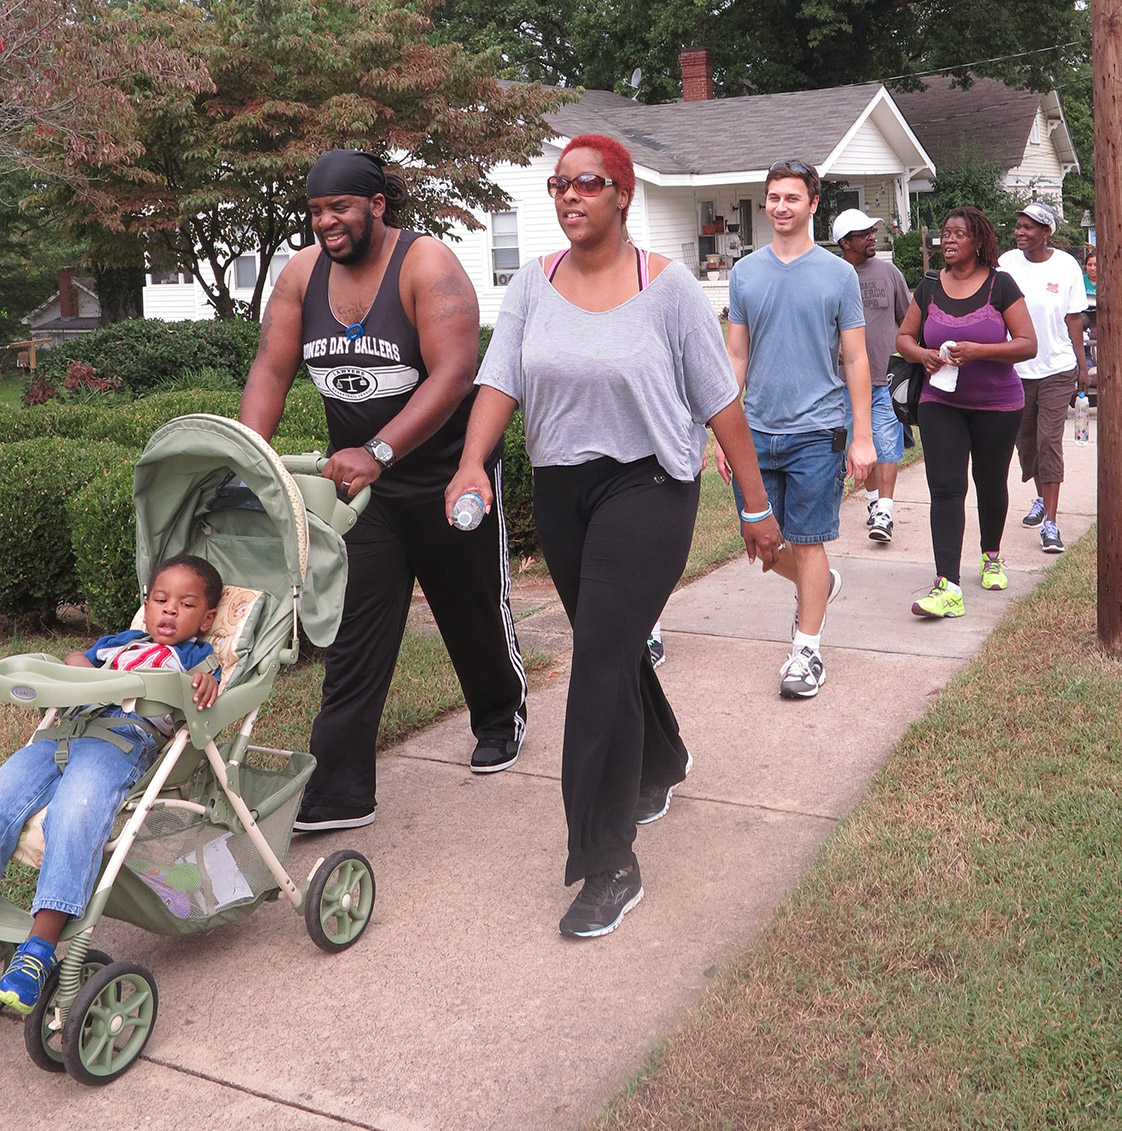 """Darryl and Lanishia Barnes and their son Jacob are """"champions"""" of the route, having walked it for two months now. They hope to be able to make it Tuesday and Thursday mornings when the group completes it, Lanishia explained, because being in a group """"helps keep you accountable."""" (Staff photo by Caitlin Ball)"""